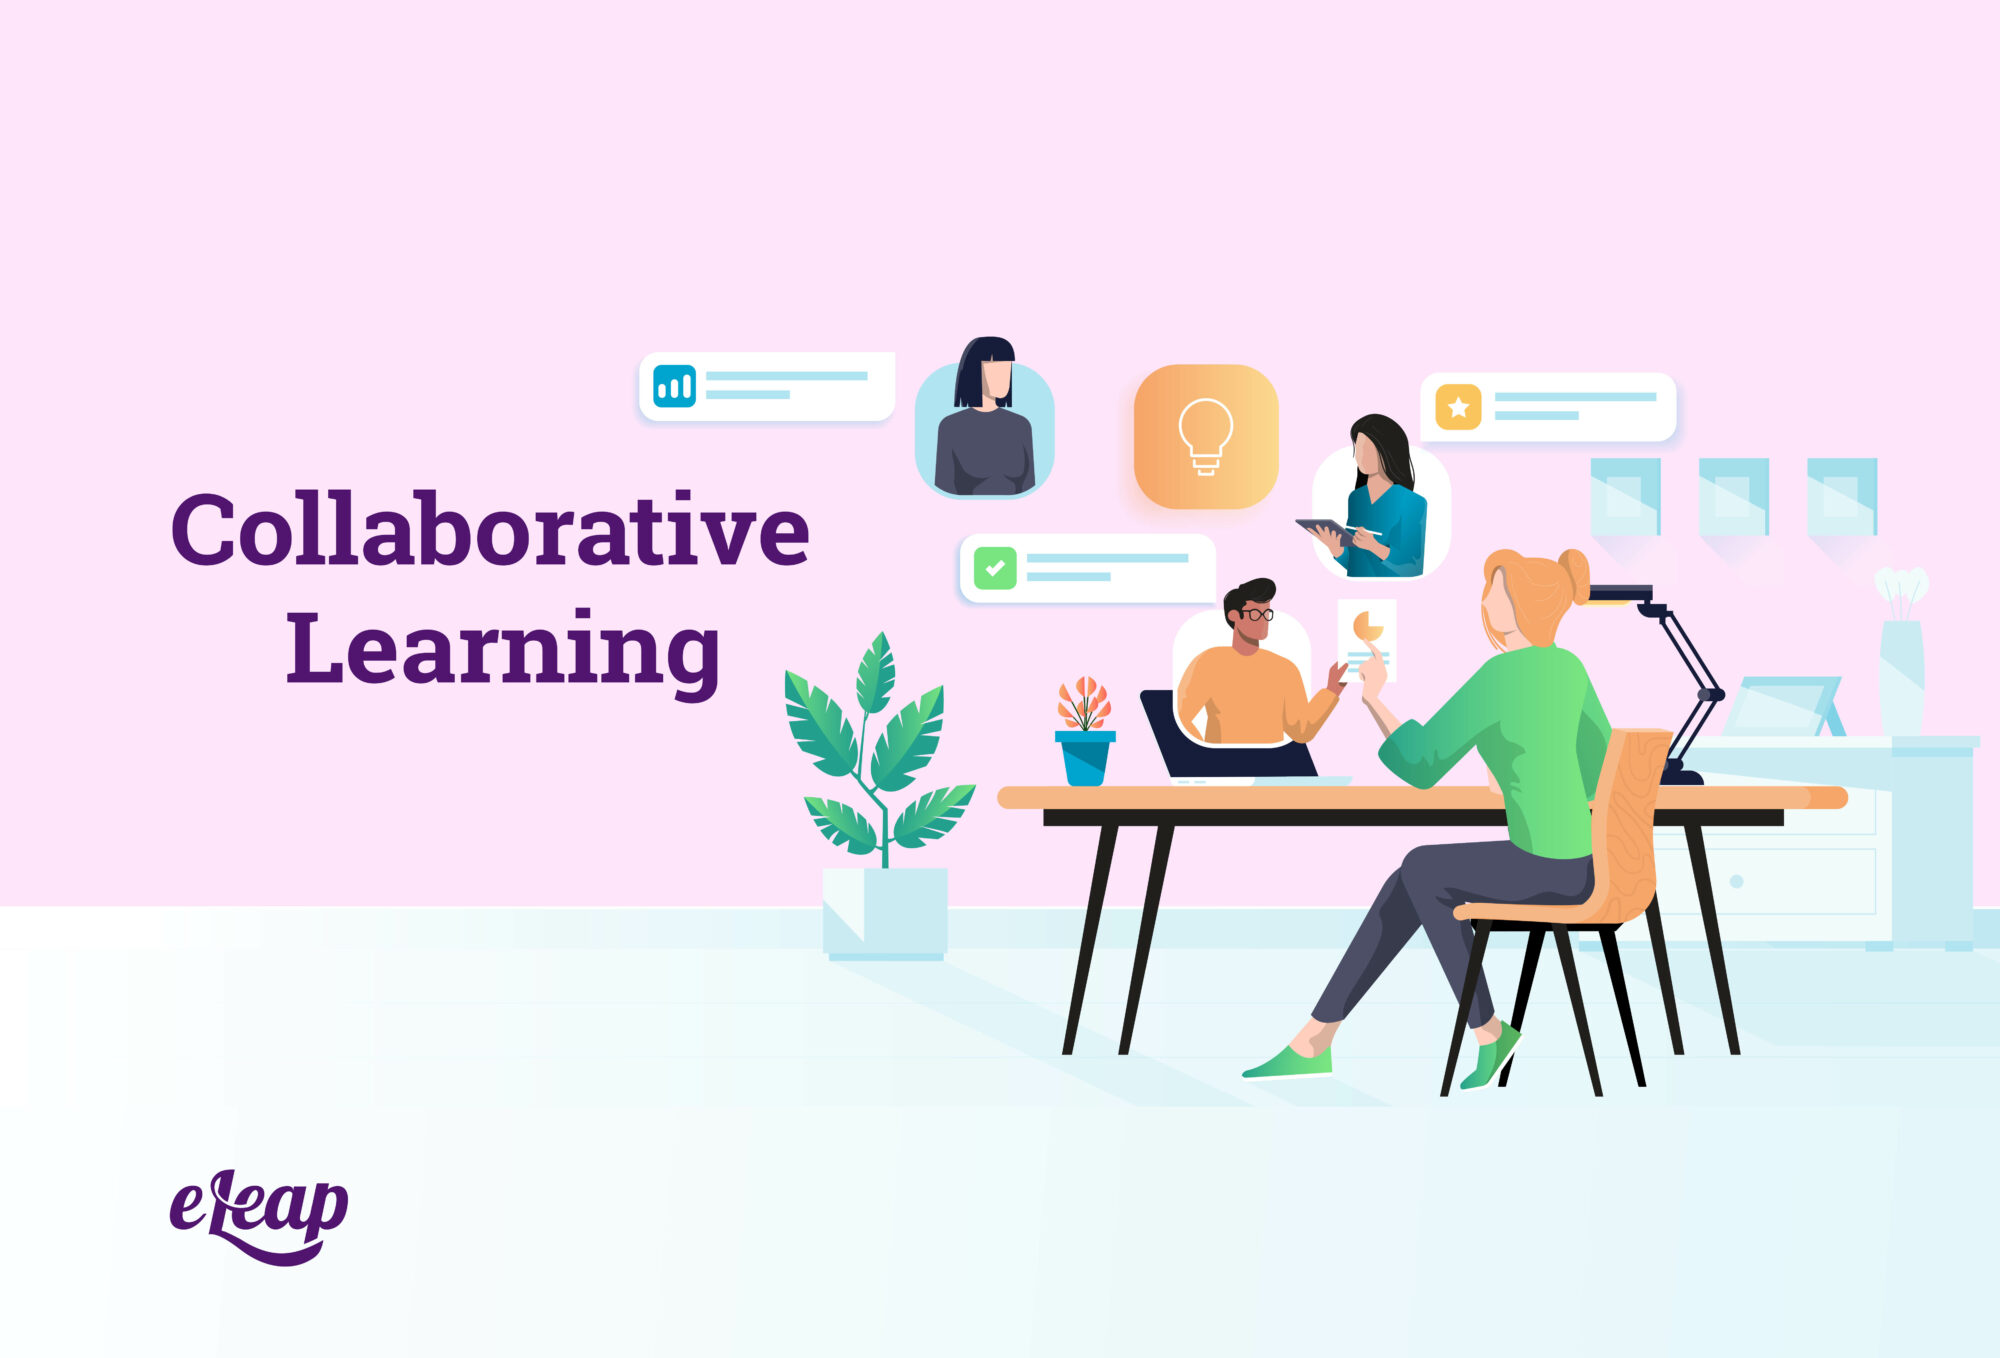 Collaborative Learning